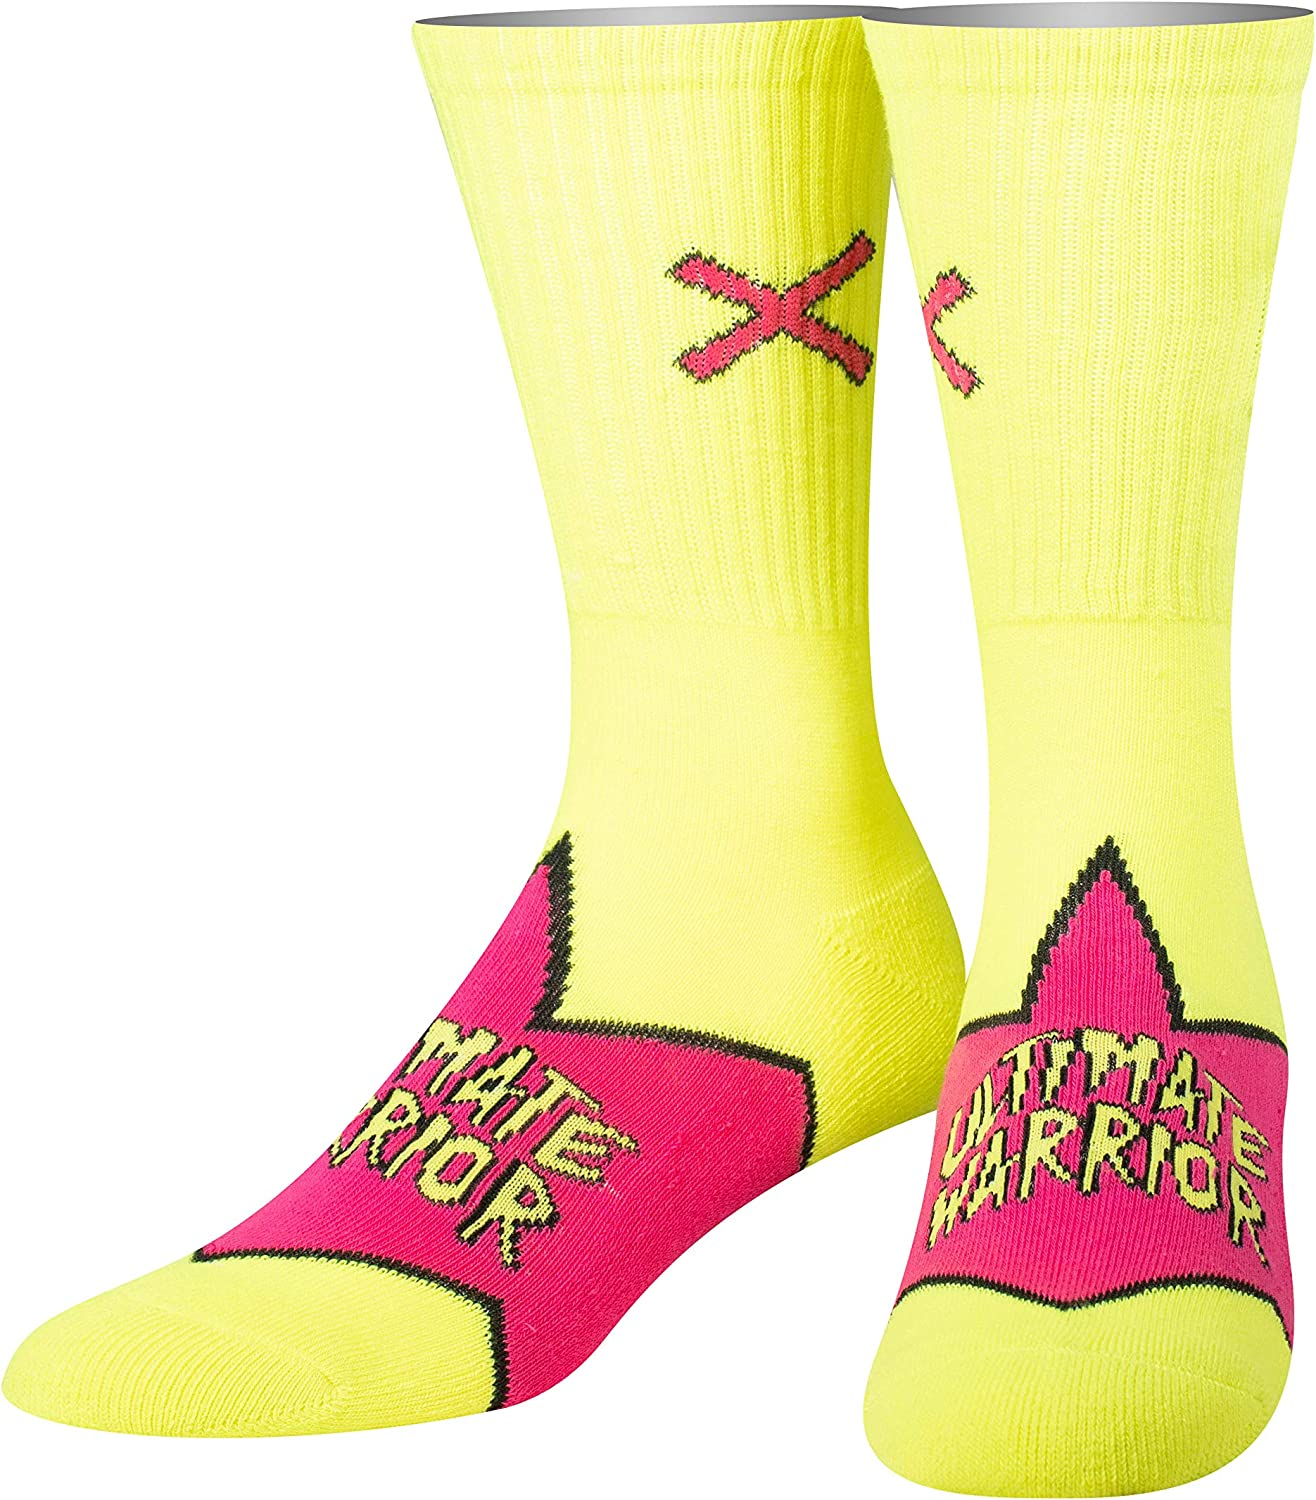 Odd Sox, Unisex, WWE Wrestling, Faces, Crew Socks, WWF Novelty Crazy Funny Silly Cool